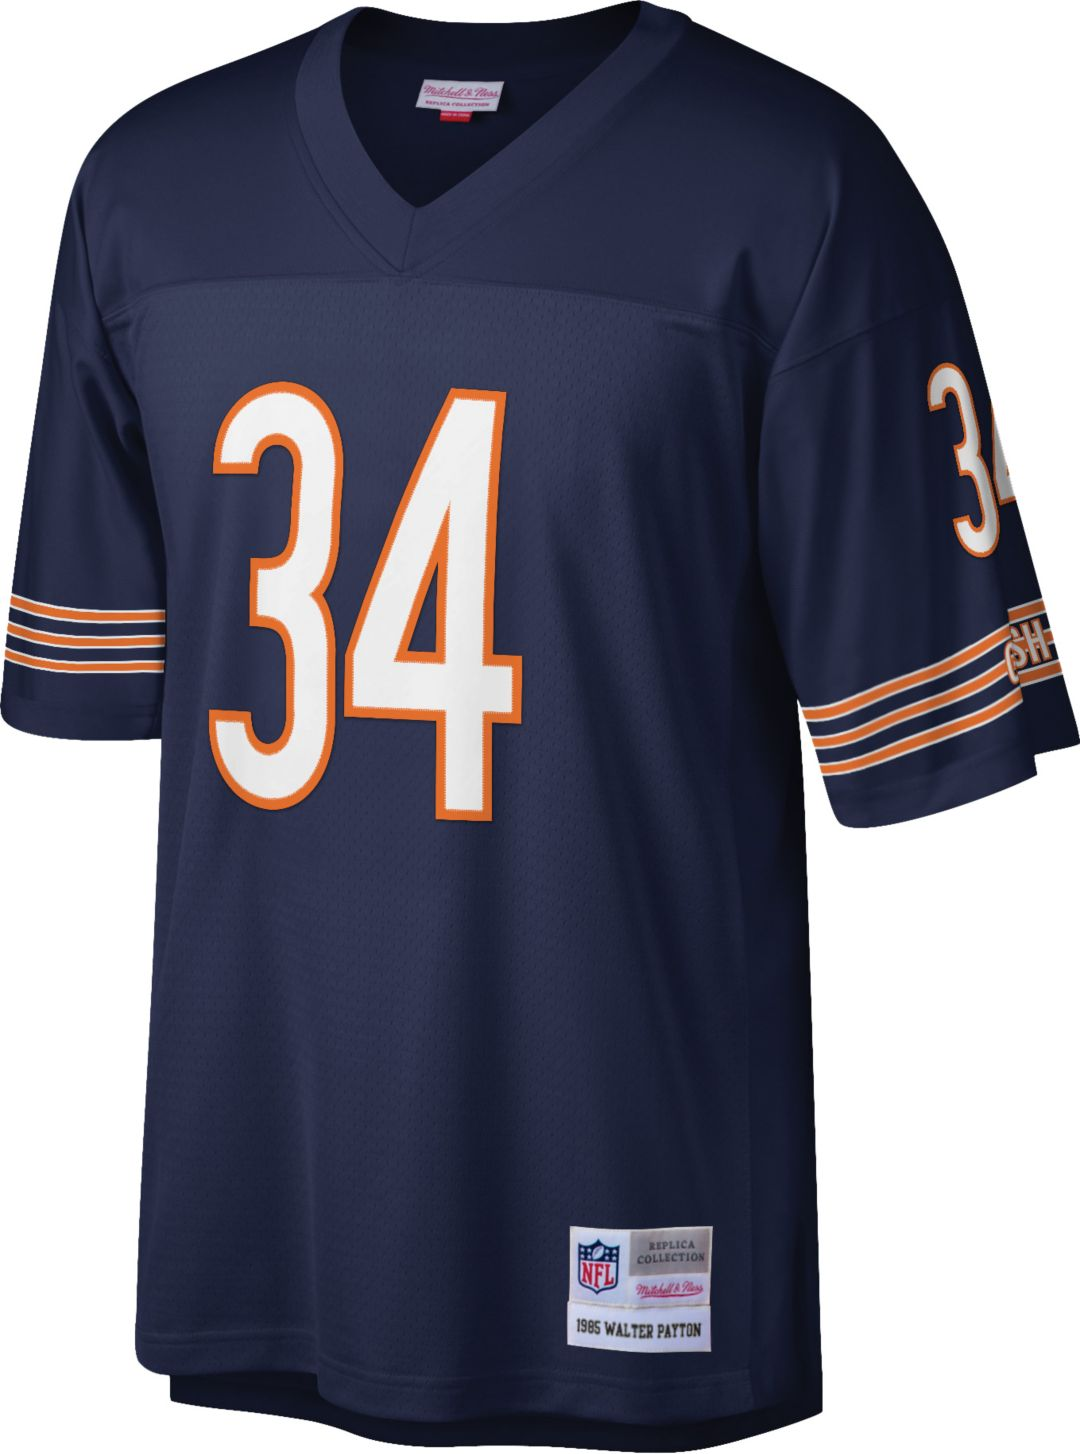 online store a831c e2cfc Mitchell & Ness Men's 1985 Game Jersey Chicago Bears Walter Payton #34